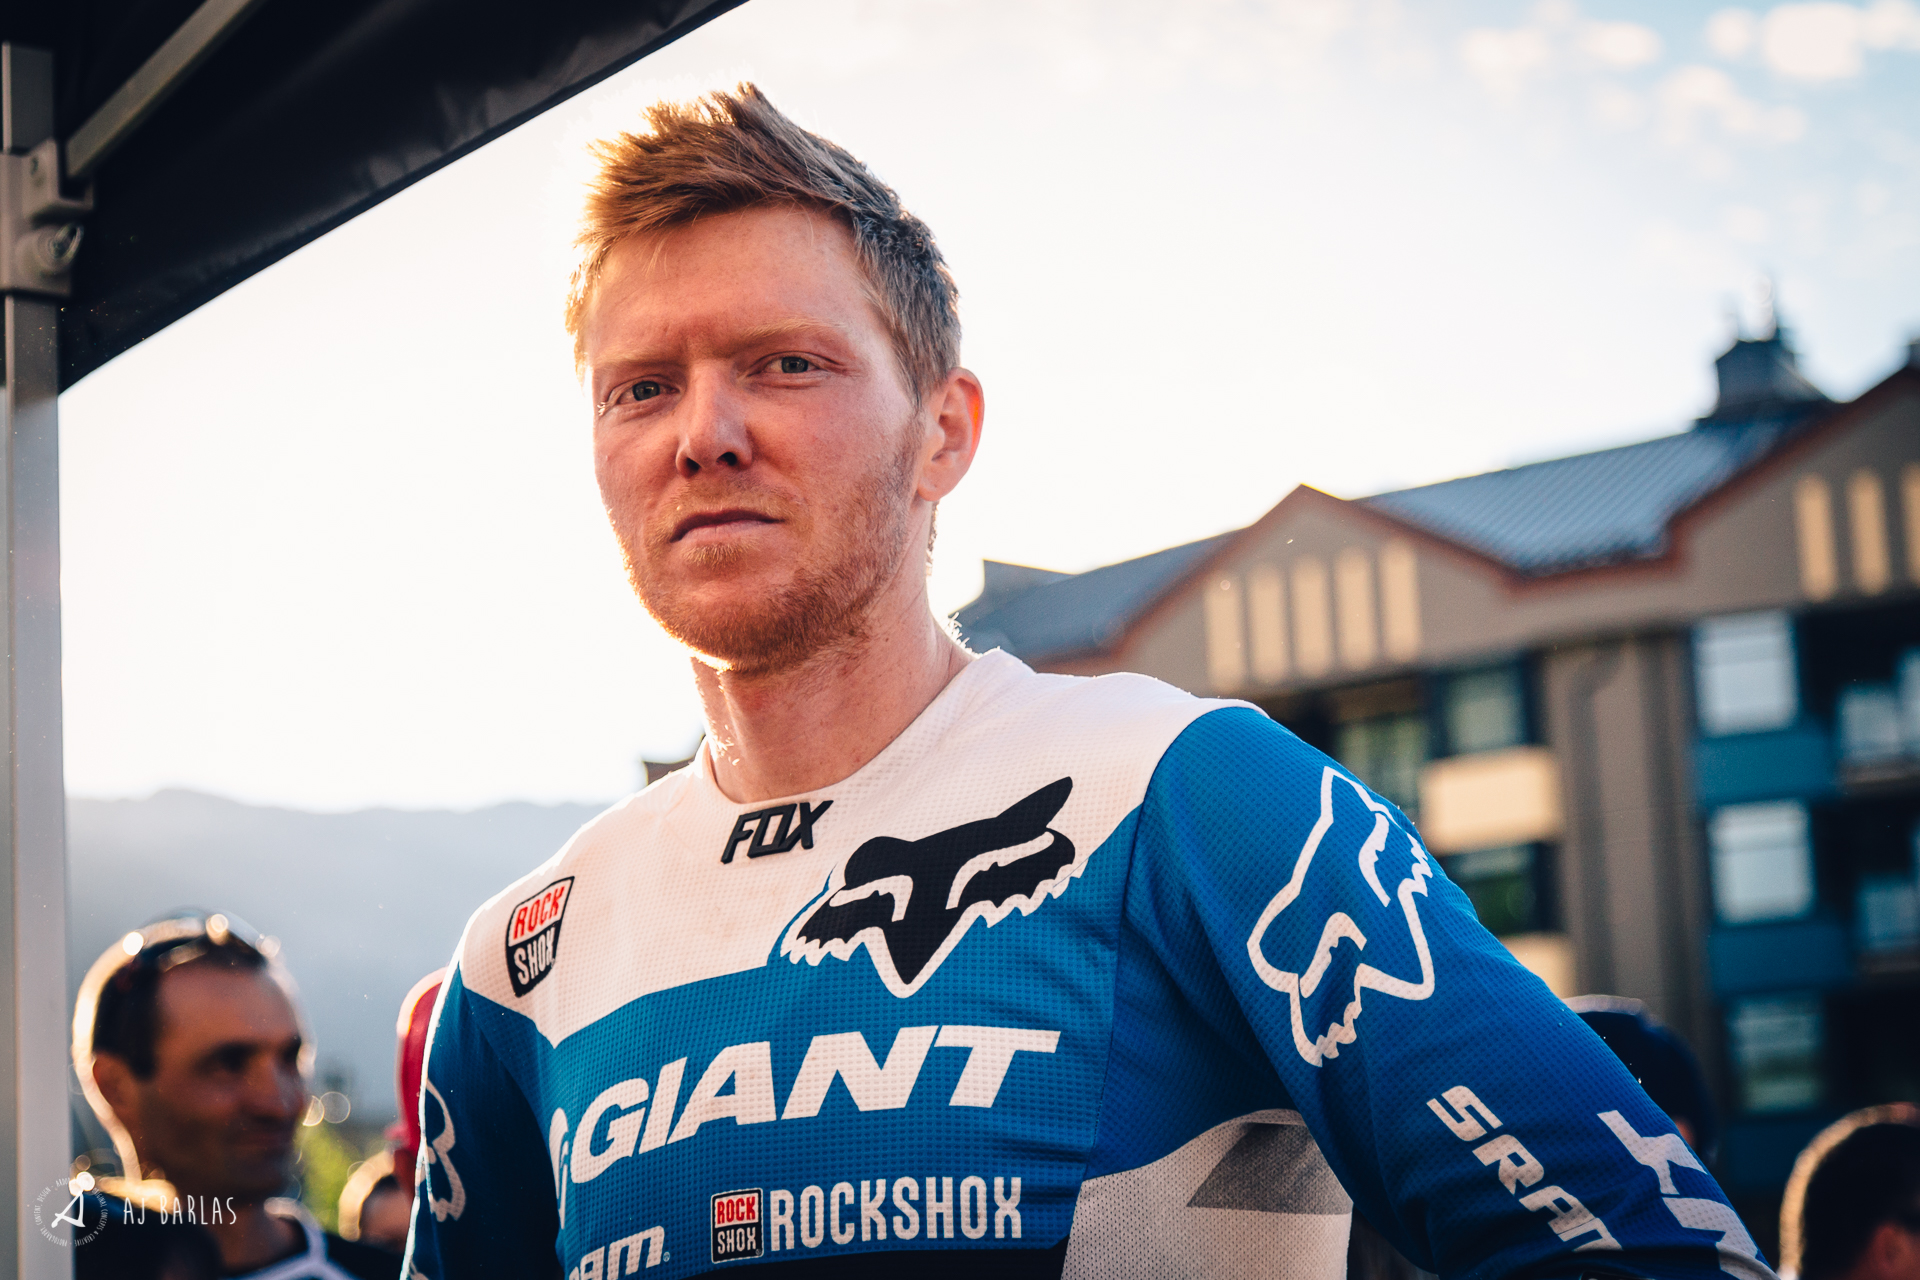 Josh Carlson lost thanks to a flat on the final stage